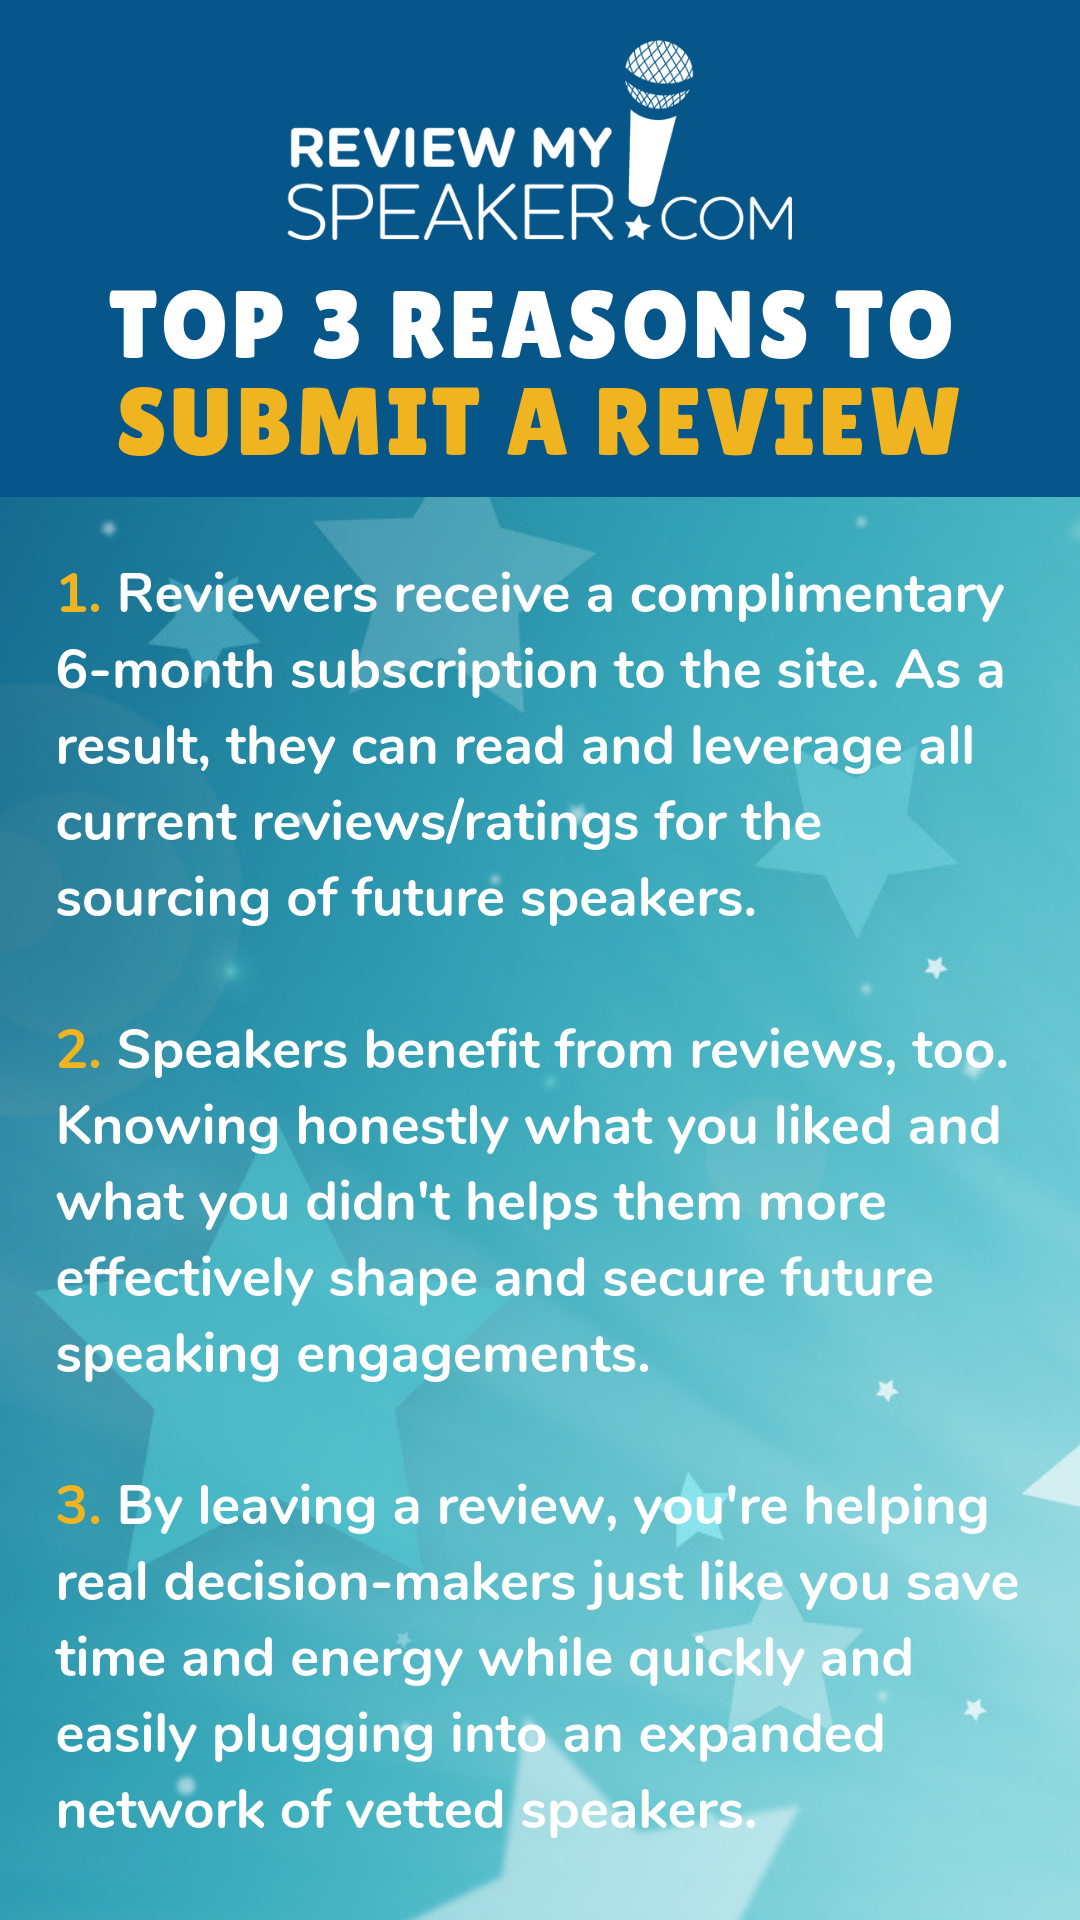 Top 3 Reasons to Review a Speaker